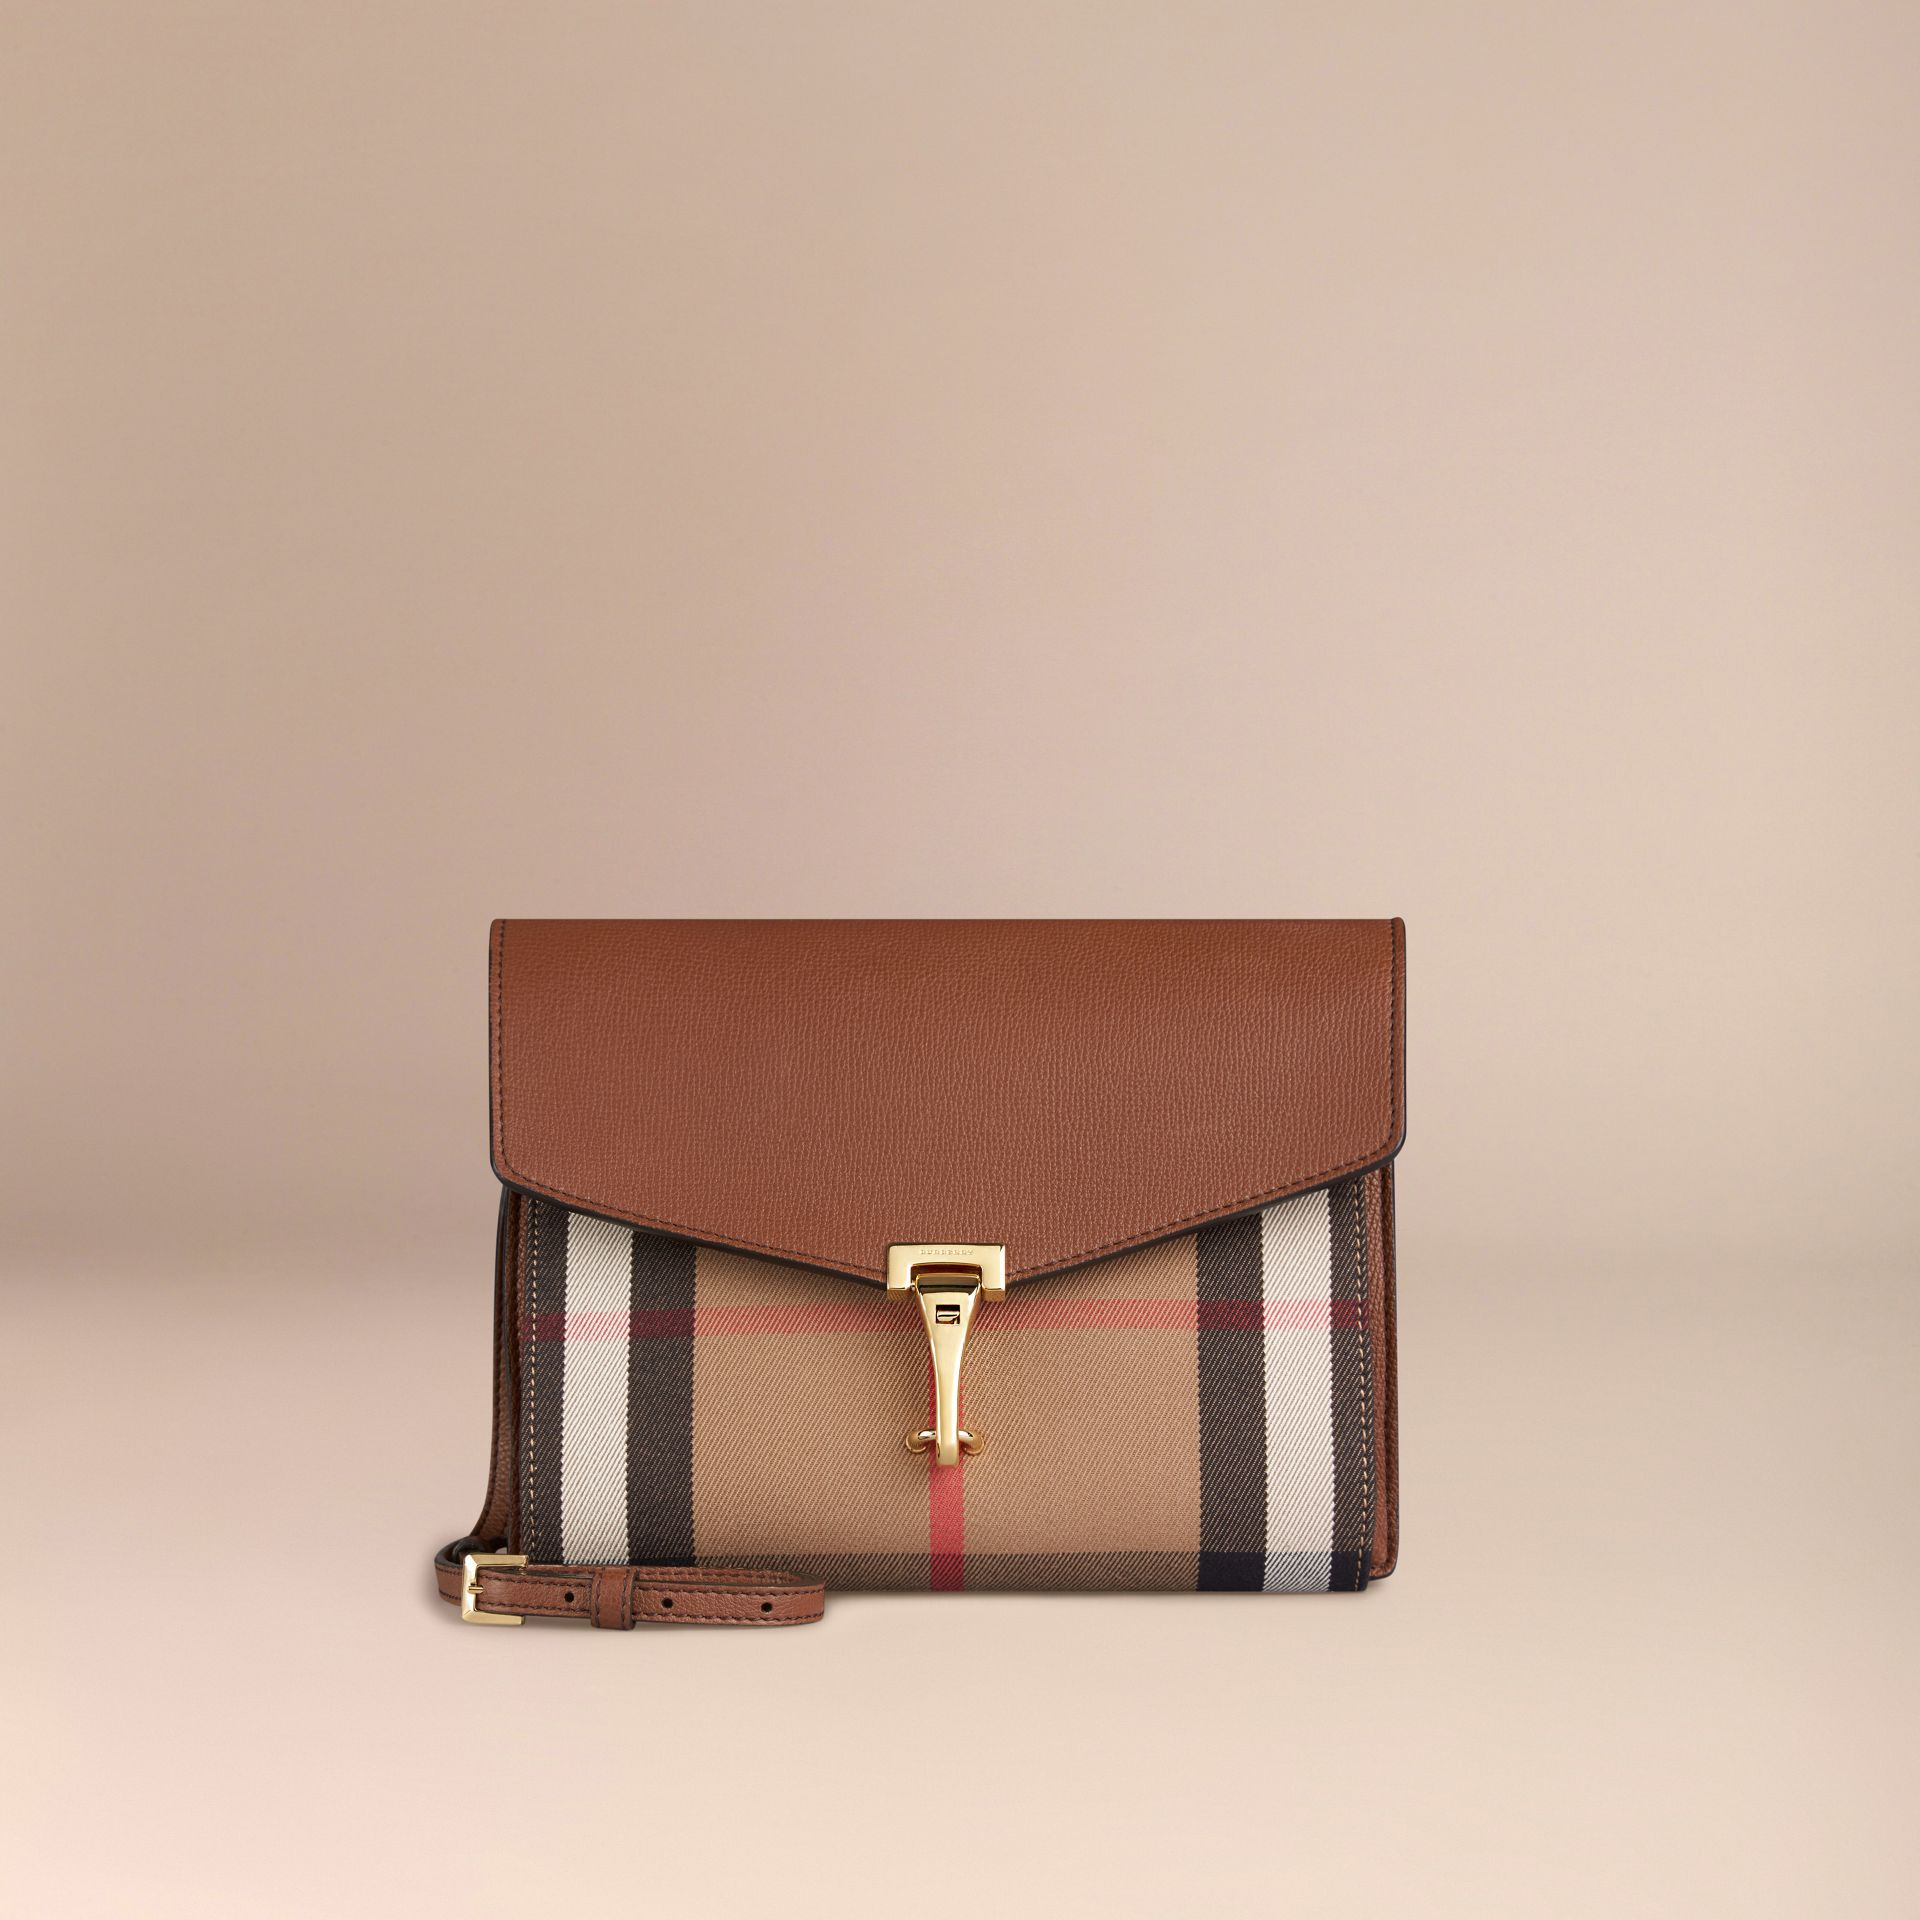 Small Leather and House Check Crossbody Bag in Tan - Women | Burberry - gallery image 5